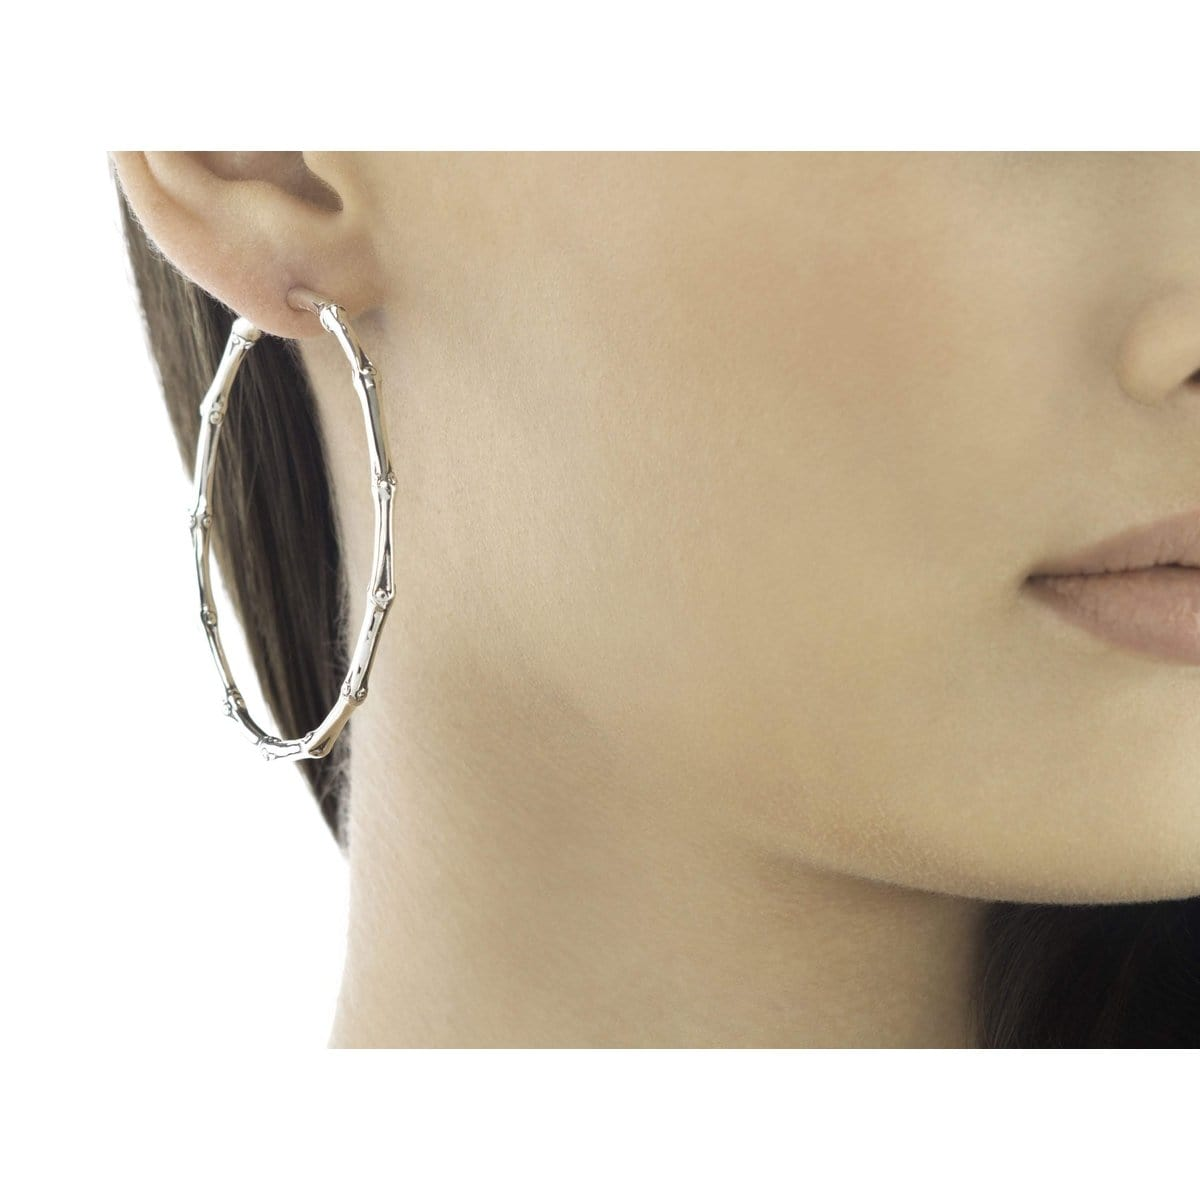 Bamboo Closure Hoop Earrings - EB5111-John Hardy-Renee Taylor Gallery